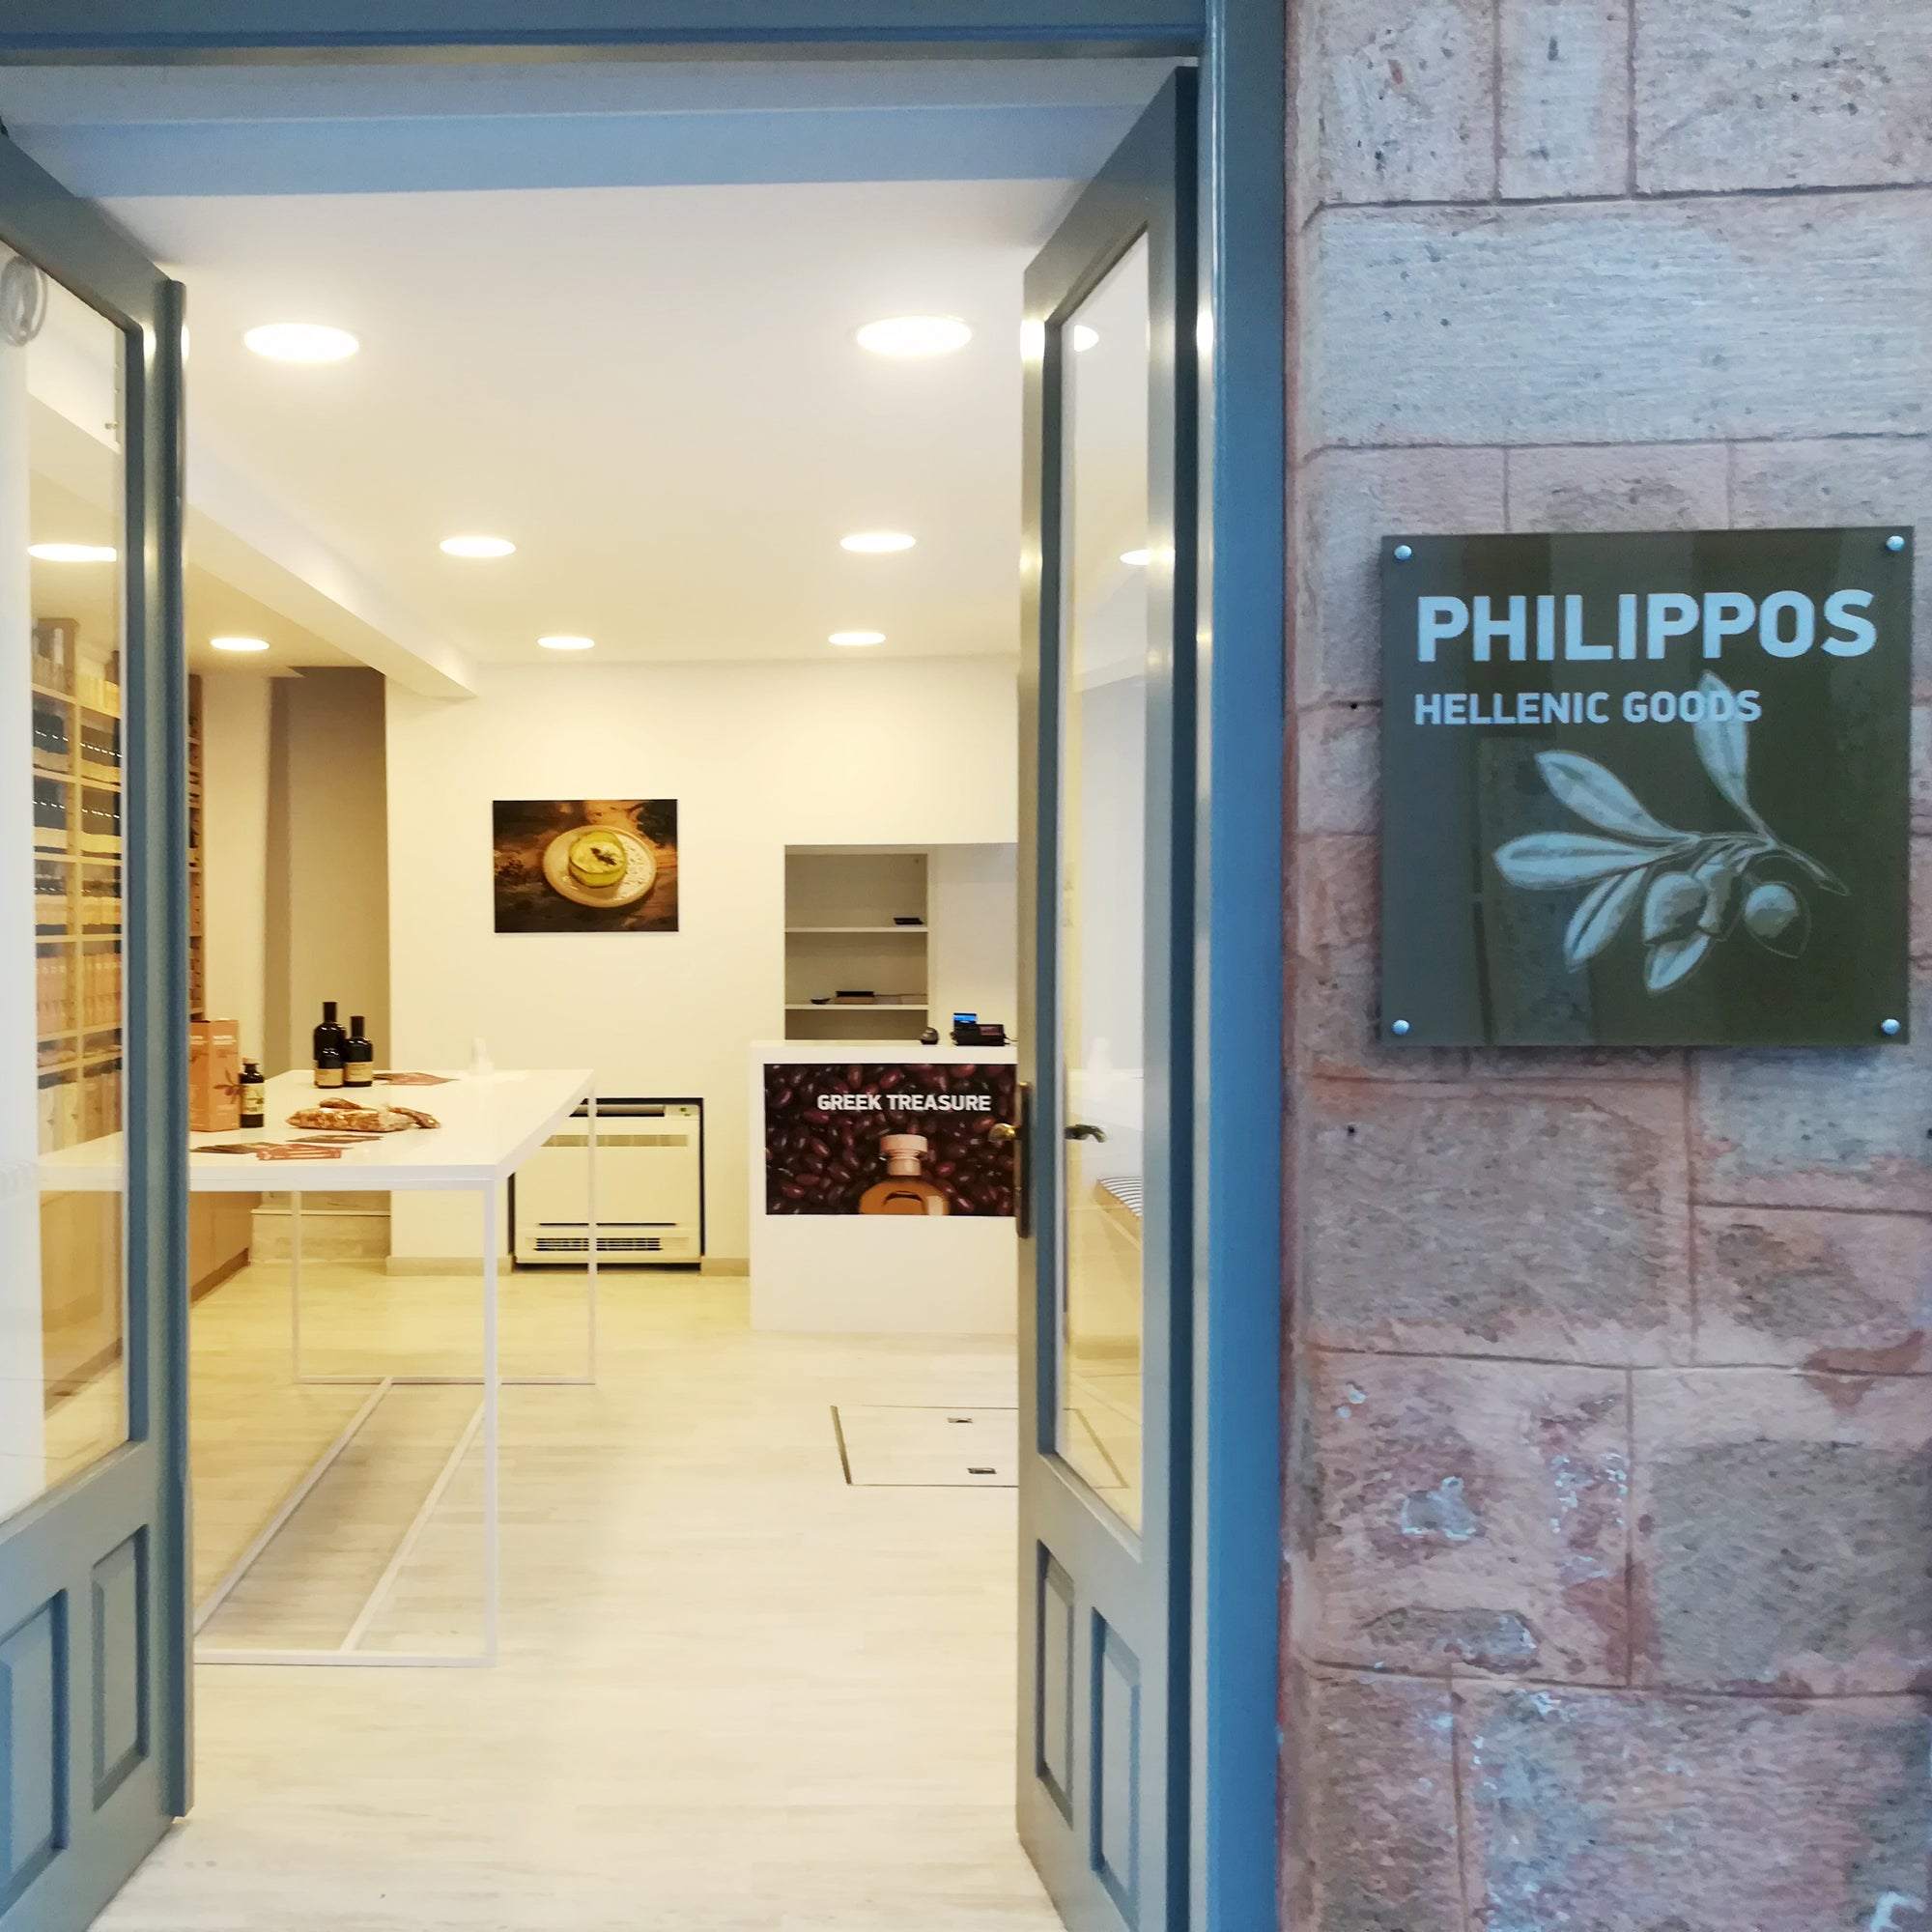 Visit Philippos' new shop in Aegina!